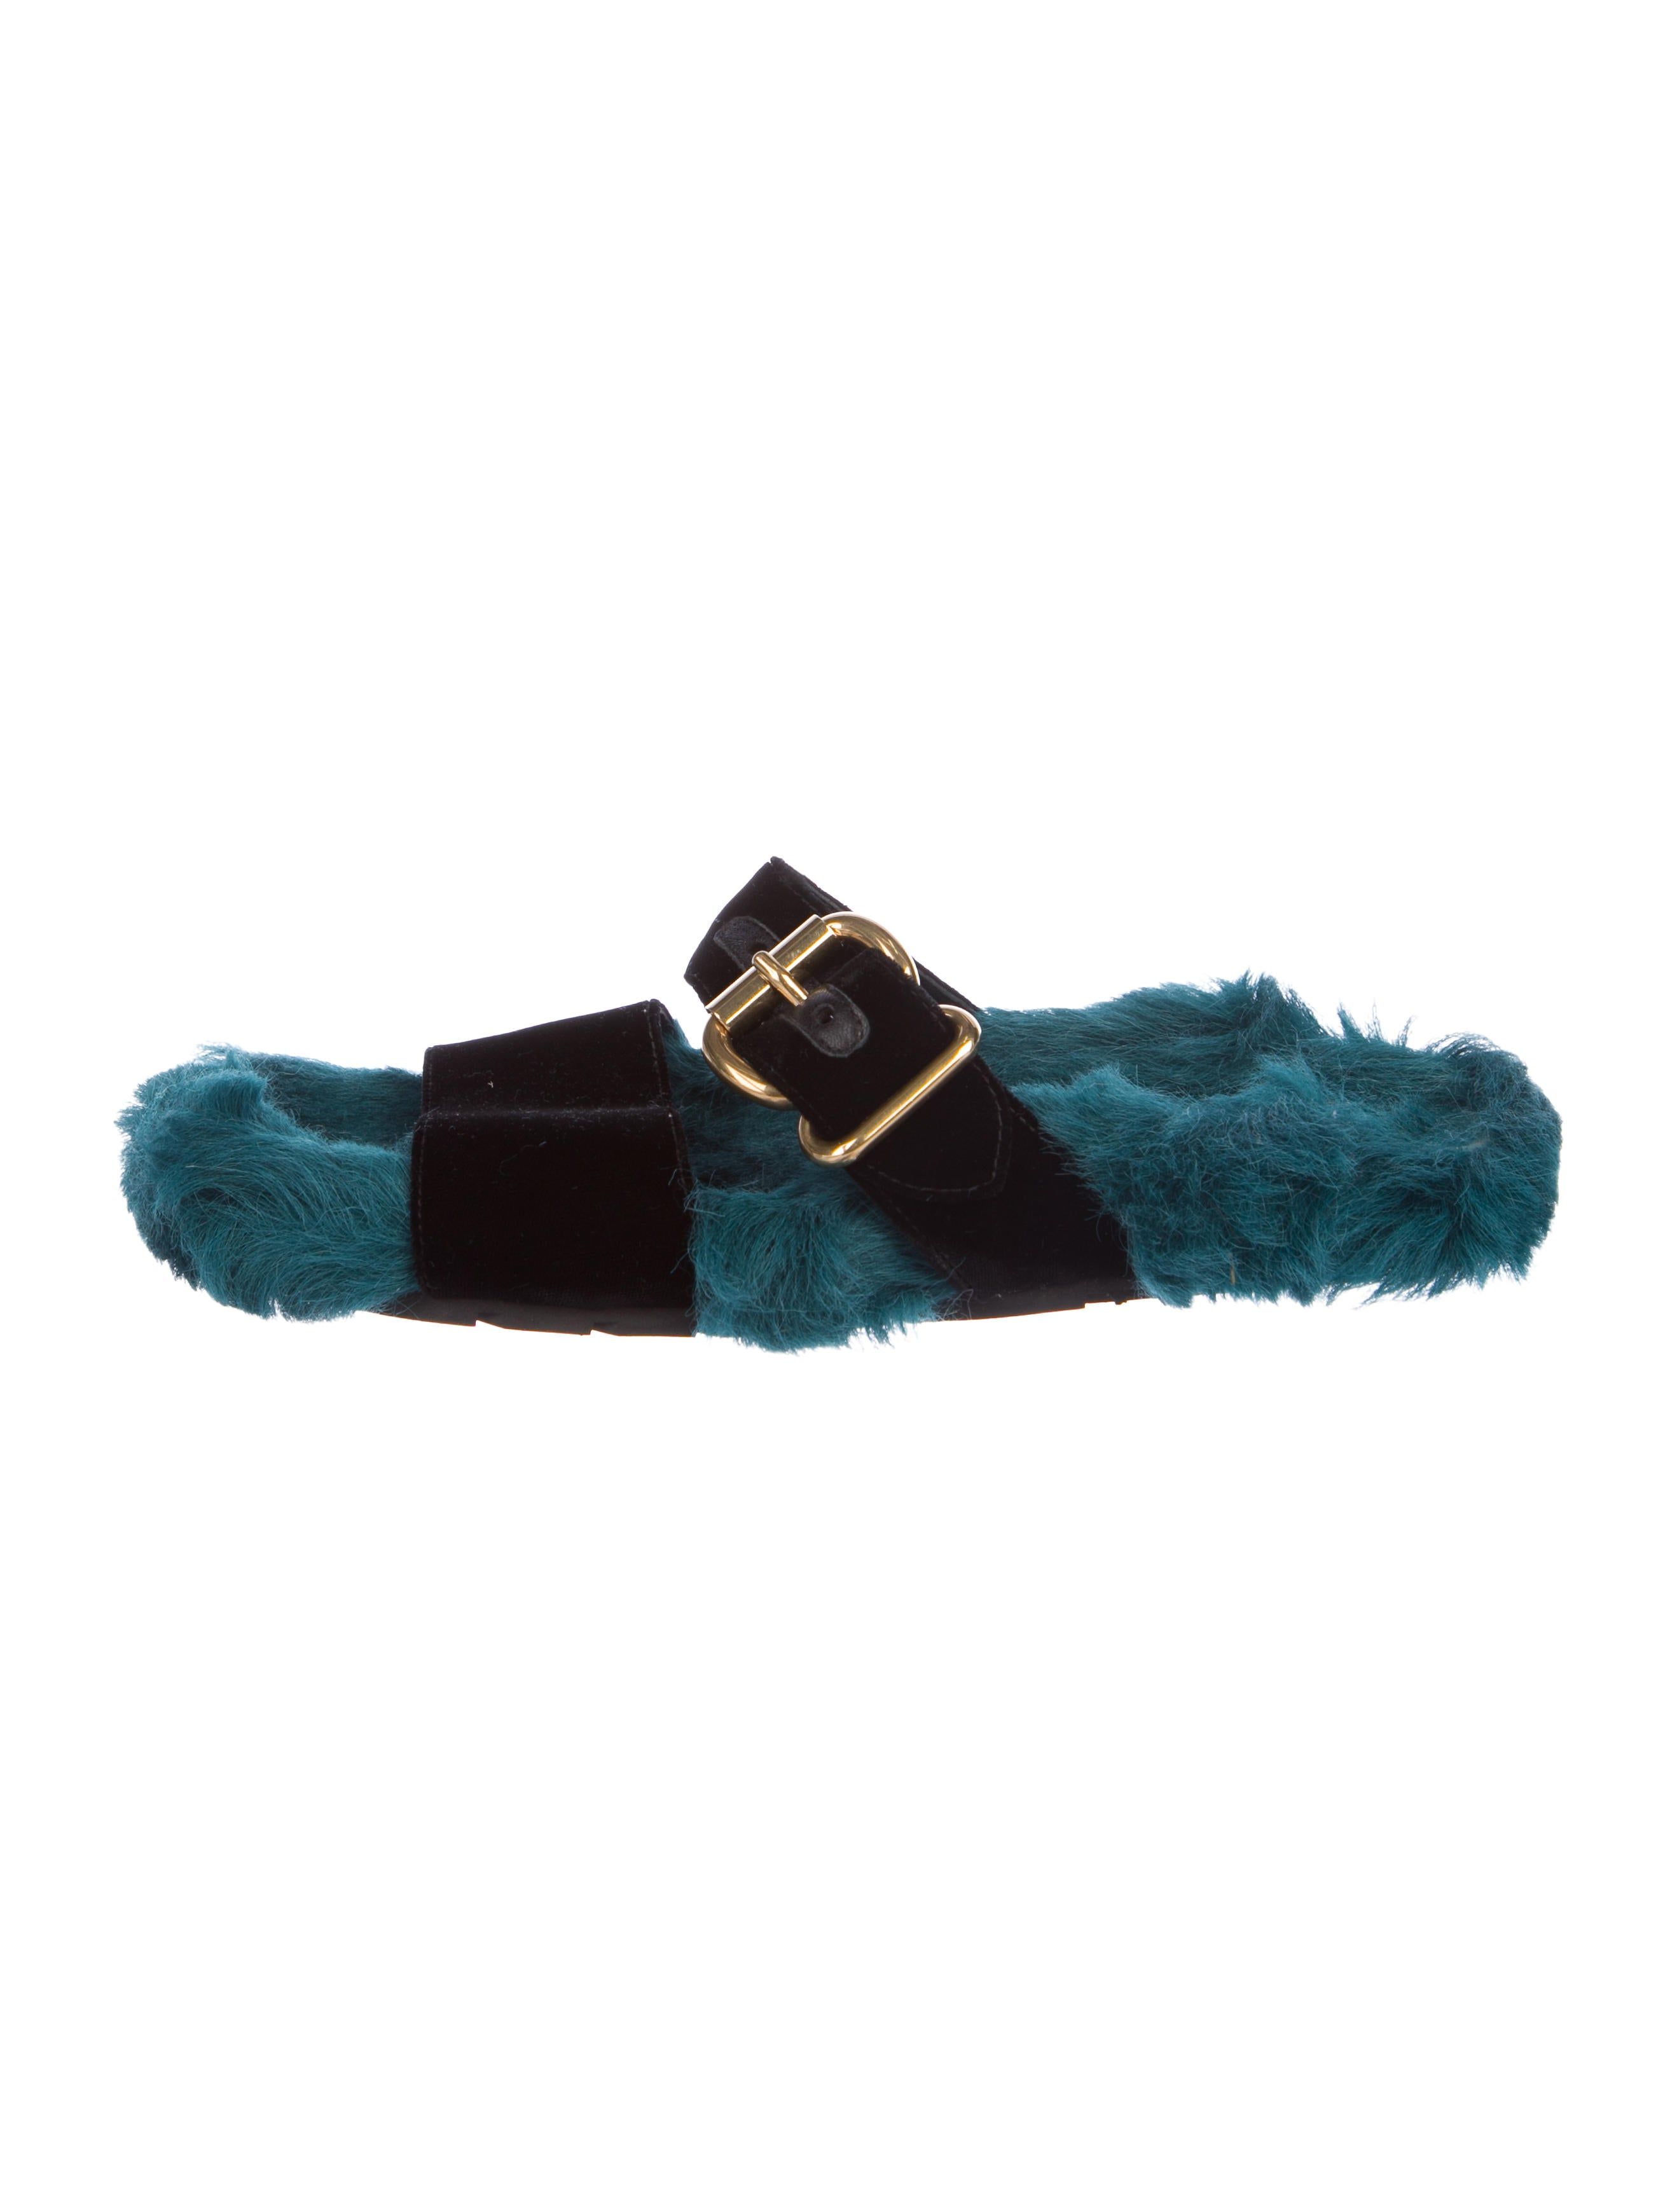 61db3ef8708 Prada Fur-Trimmed Velvet Sandals - Shoes - PRA220255